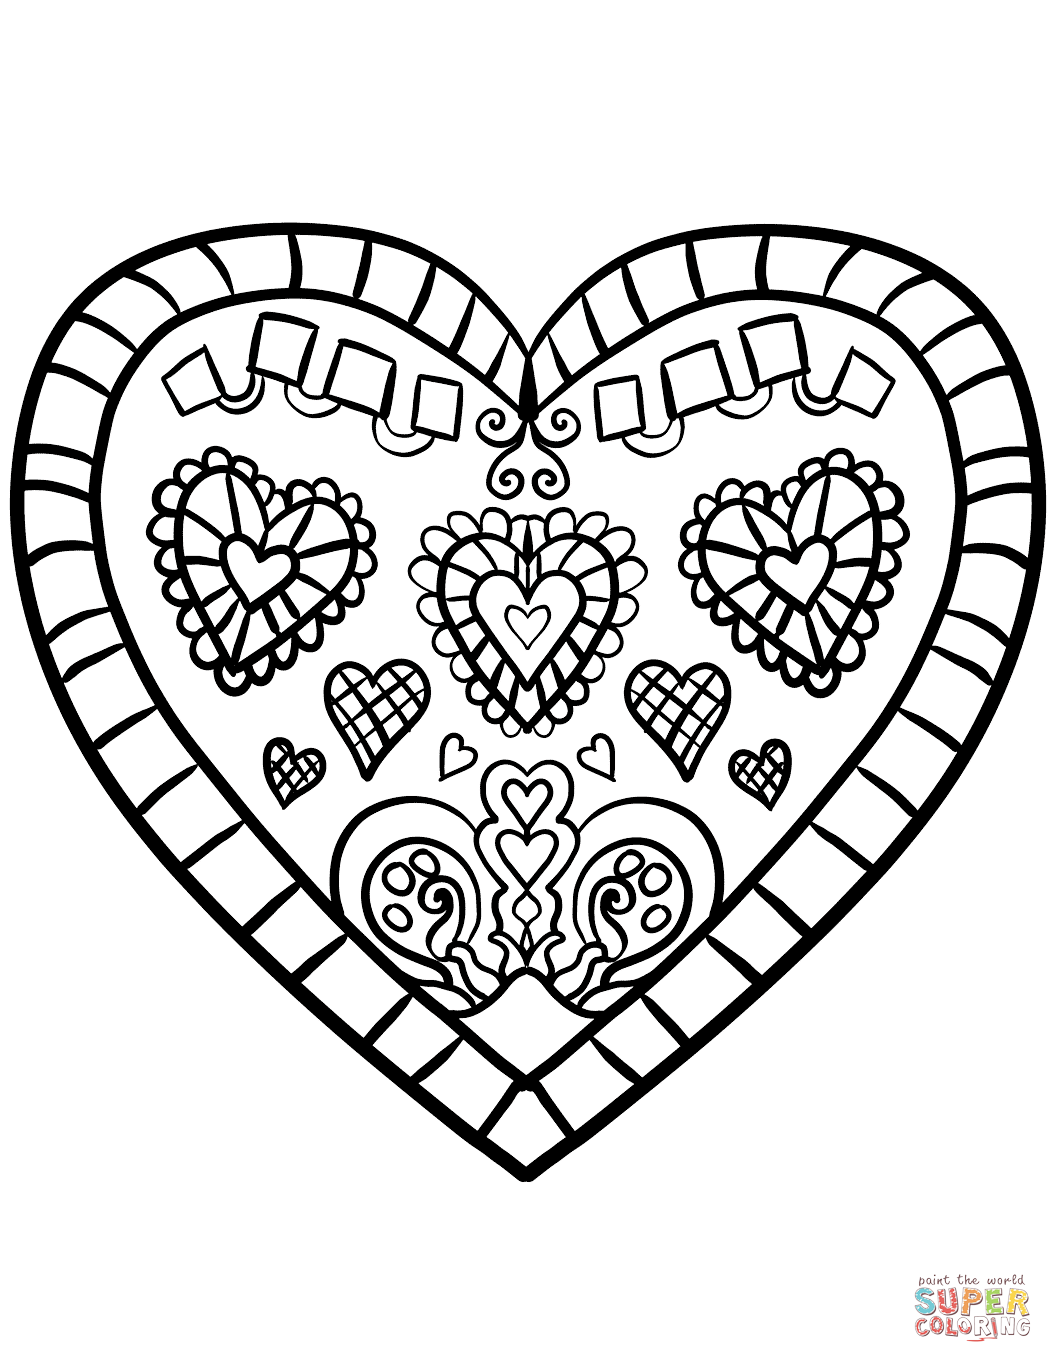 Decorated Heart Coloring Page Free Printable Coloring Pages